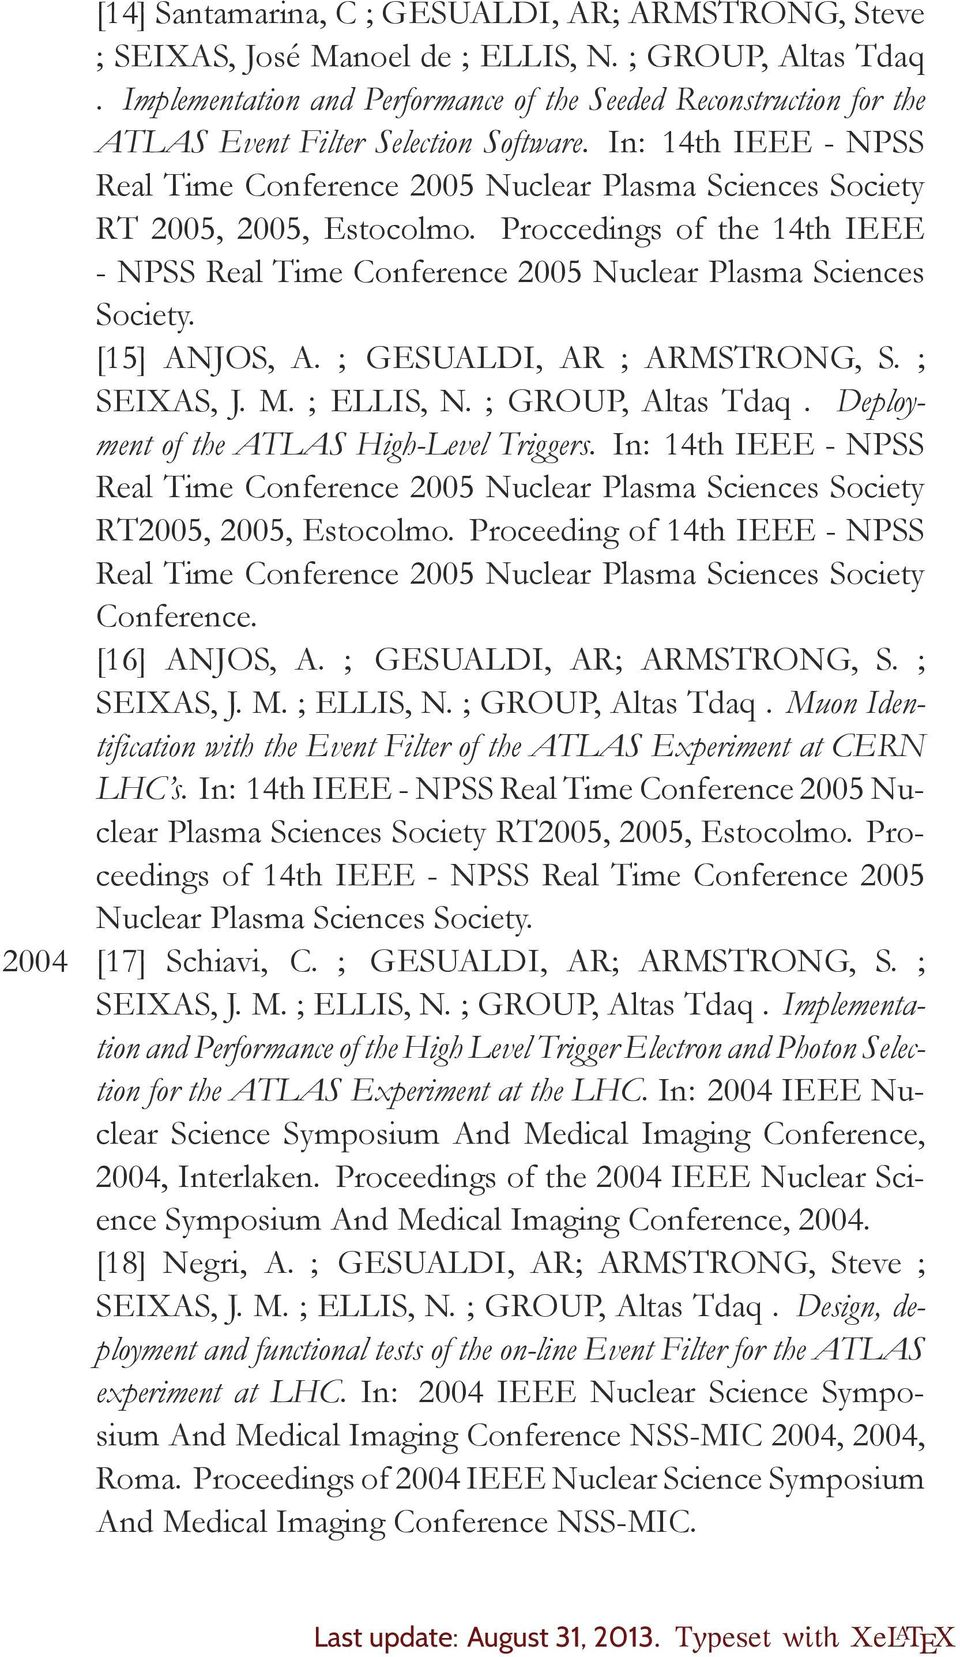 In: 14th IEEE - NPSS Real Time Conference 2005 Nuclear Plasma Sciences Society RT 2005, 2005, Estocolmo. Proccedings of the 14th IEEE - NPSS Real Time Conference 2005 Nuclear Plasma Sciences Society.